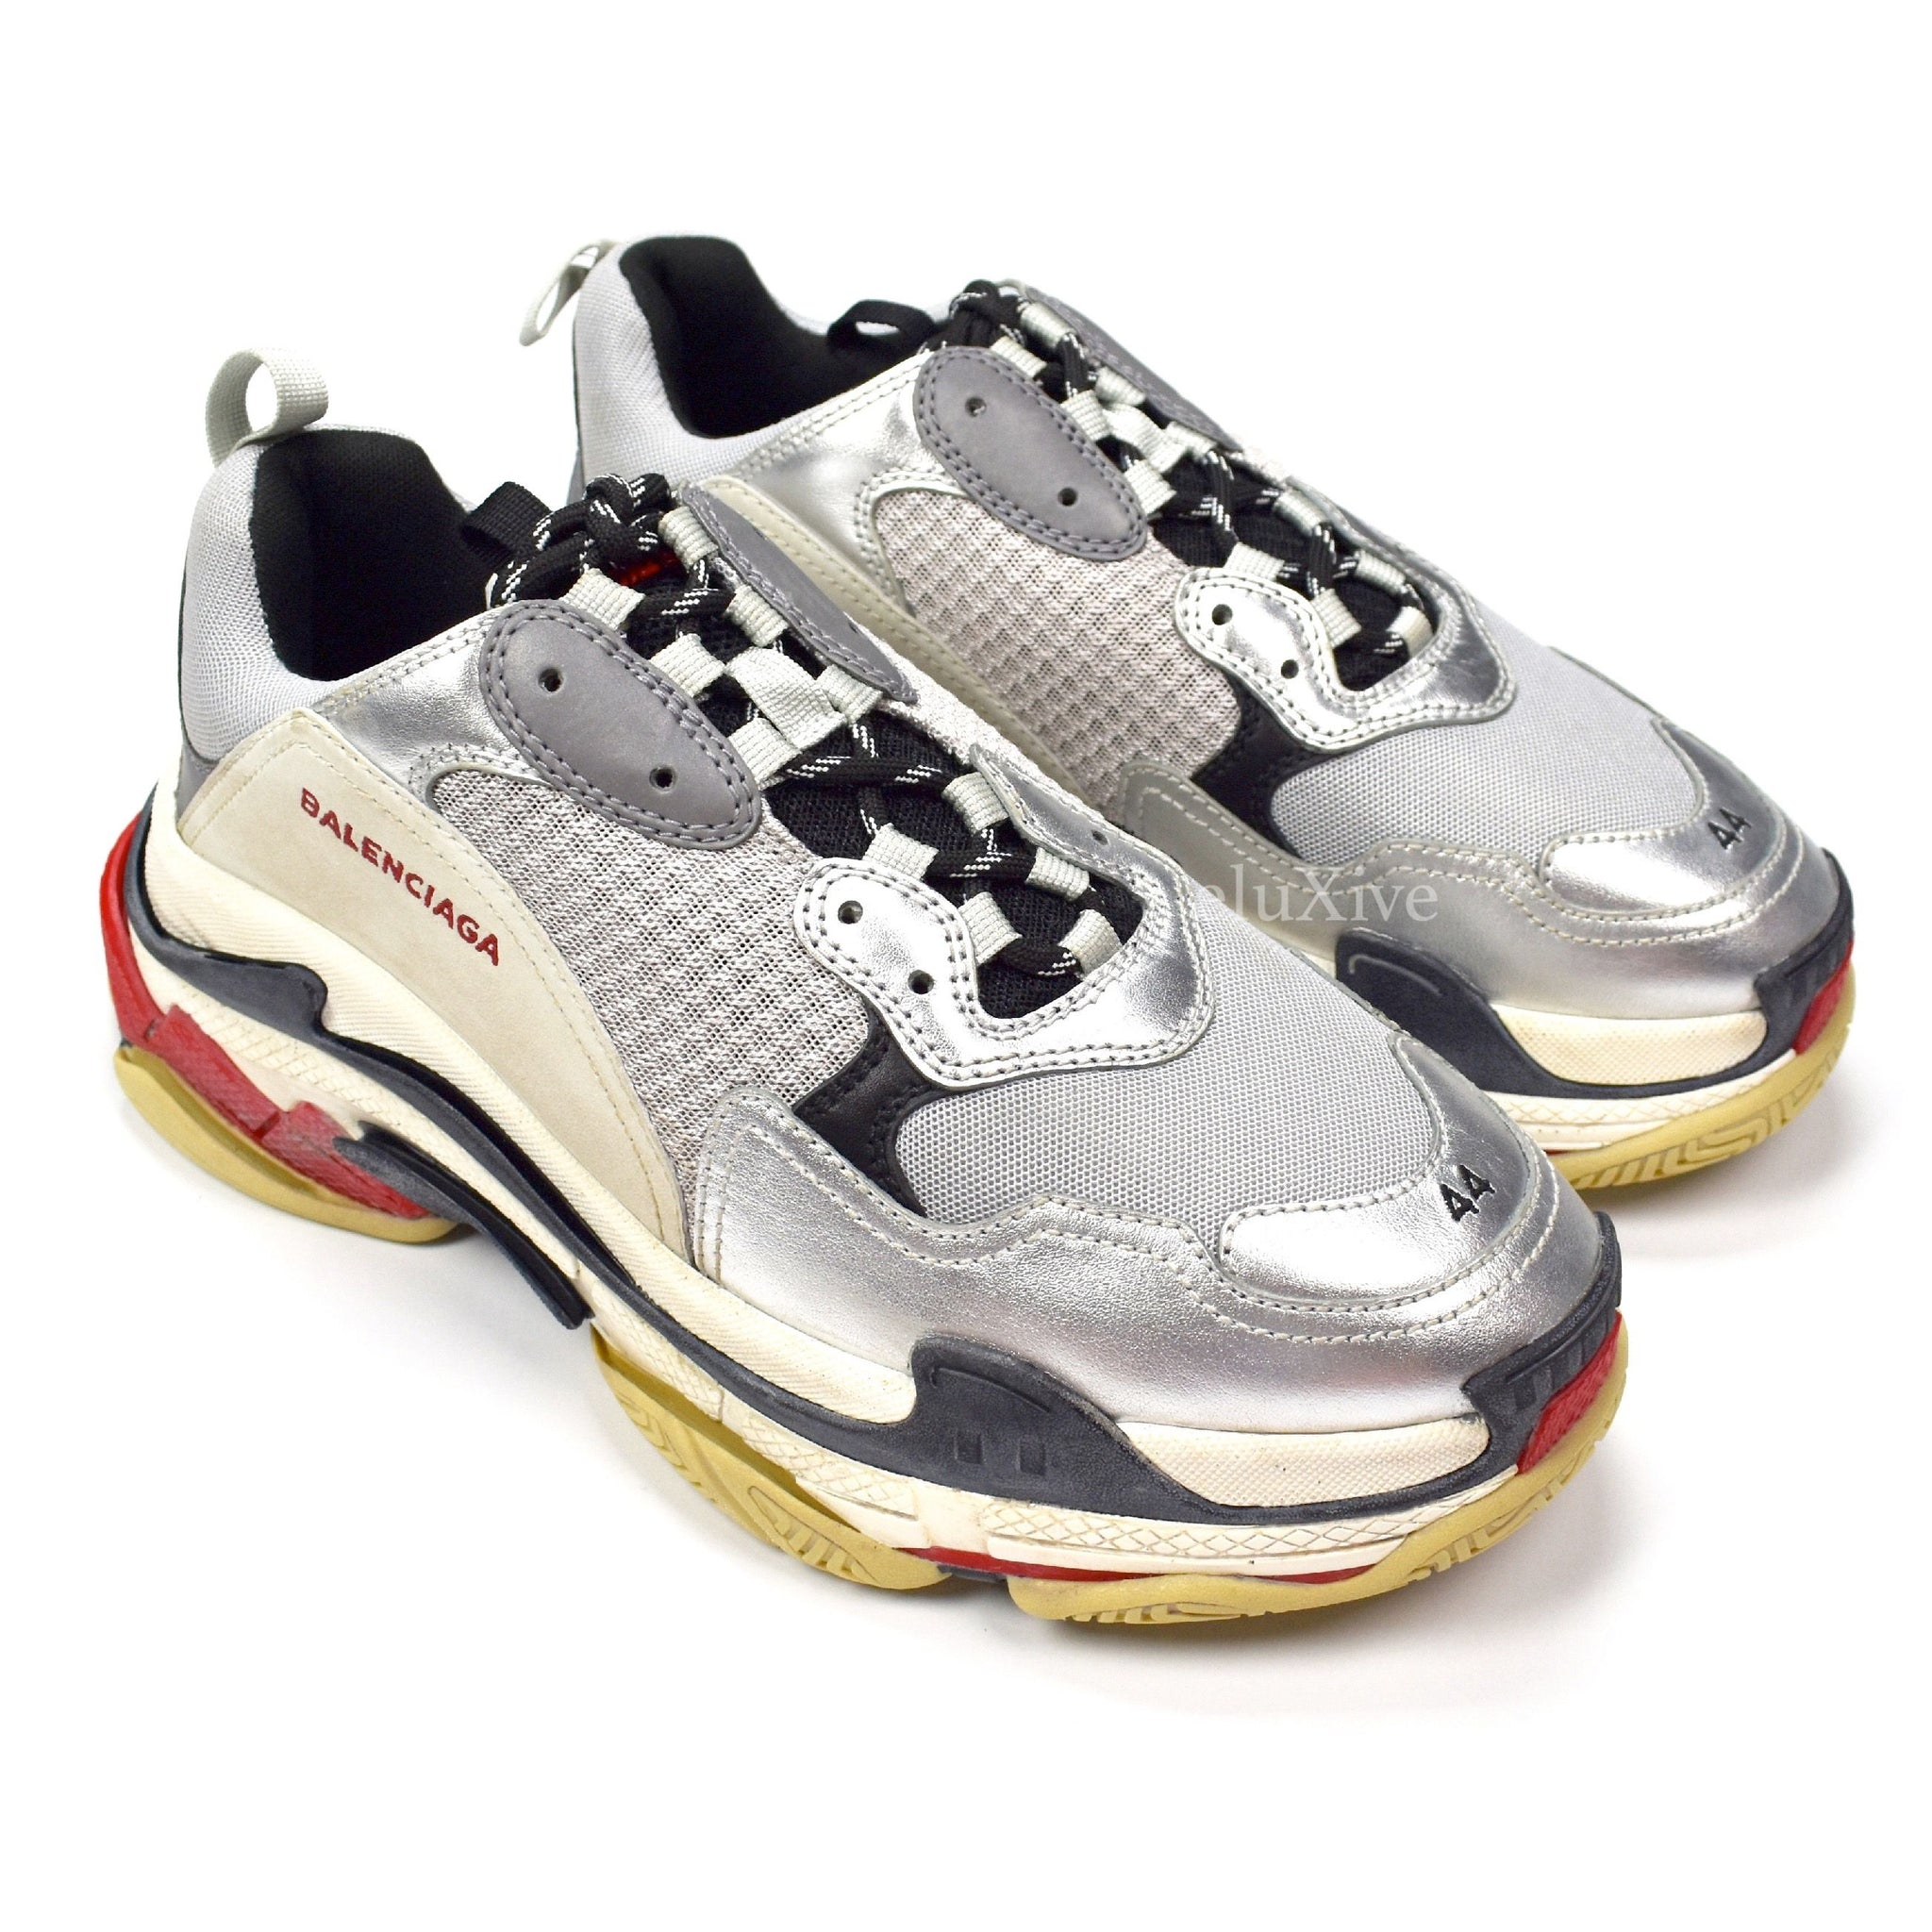 Men's Triple S Chunky Sole Trainer